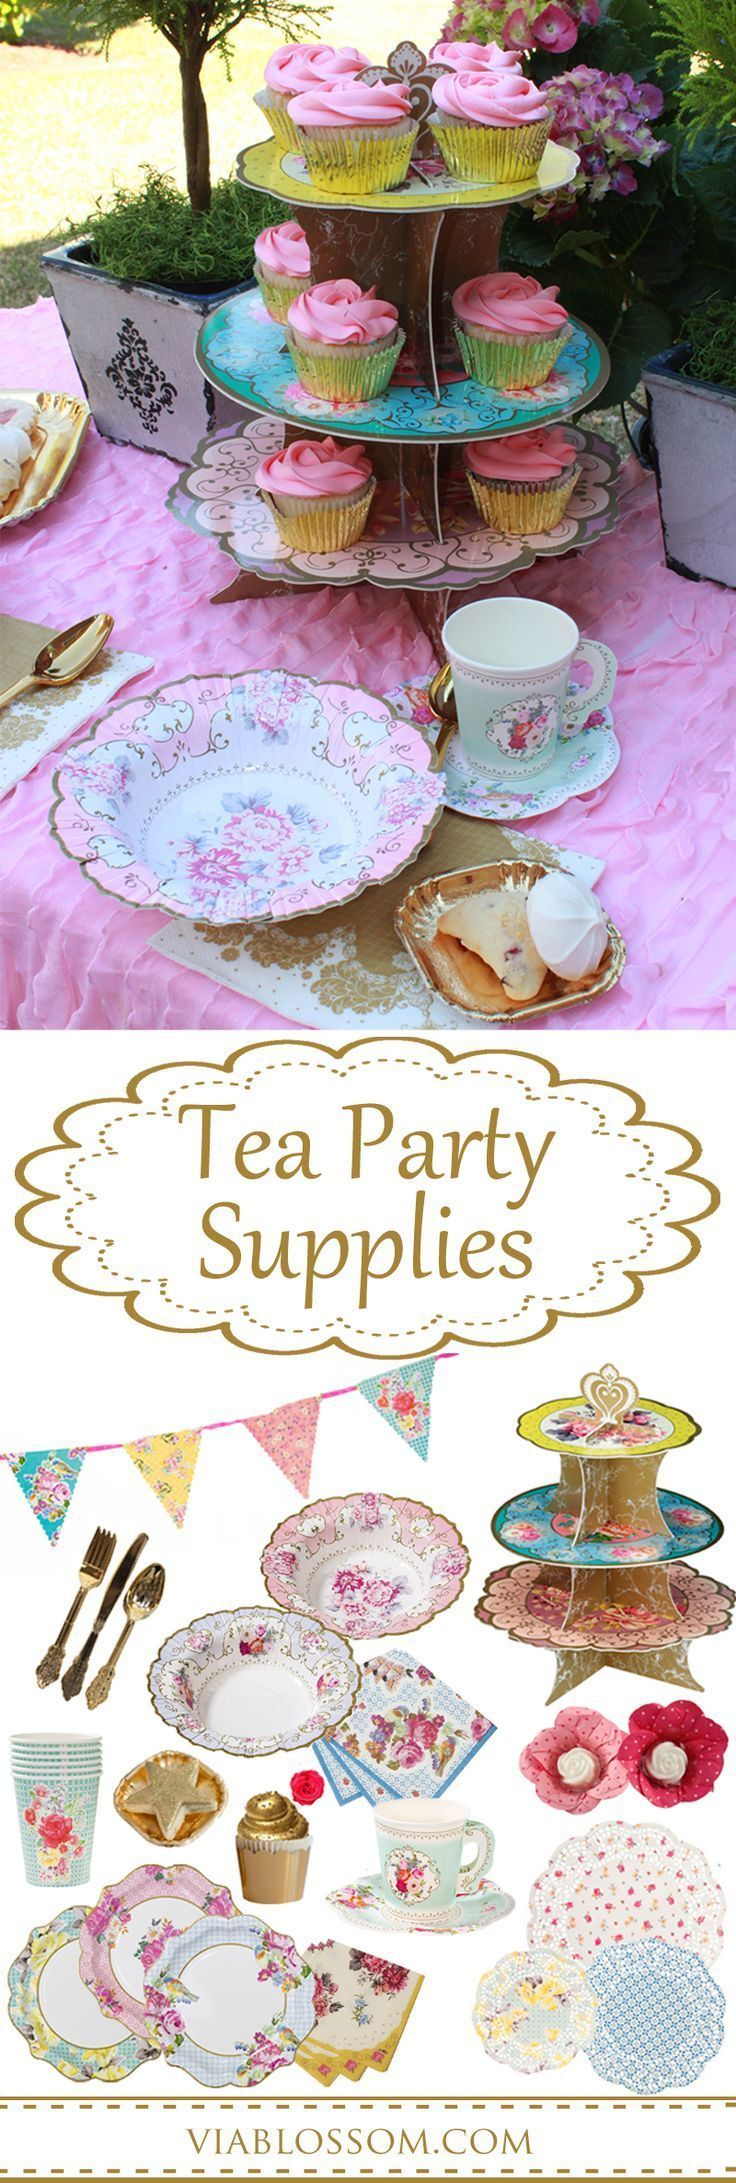 The most adorable Tea Party ideas for